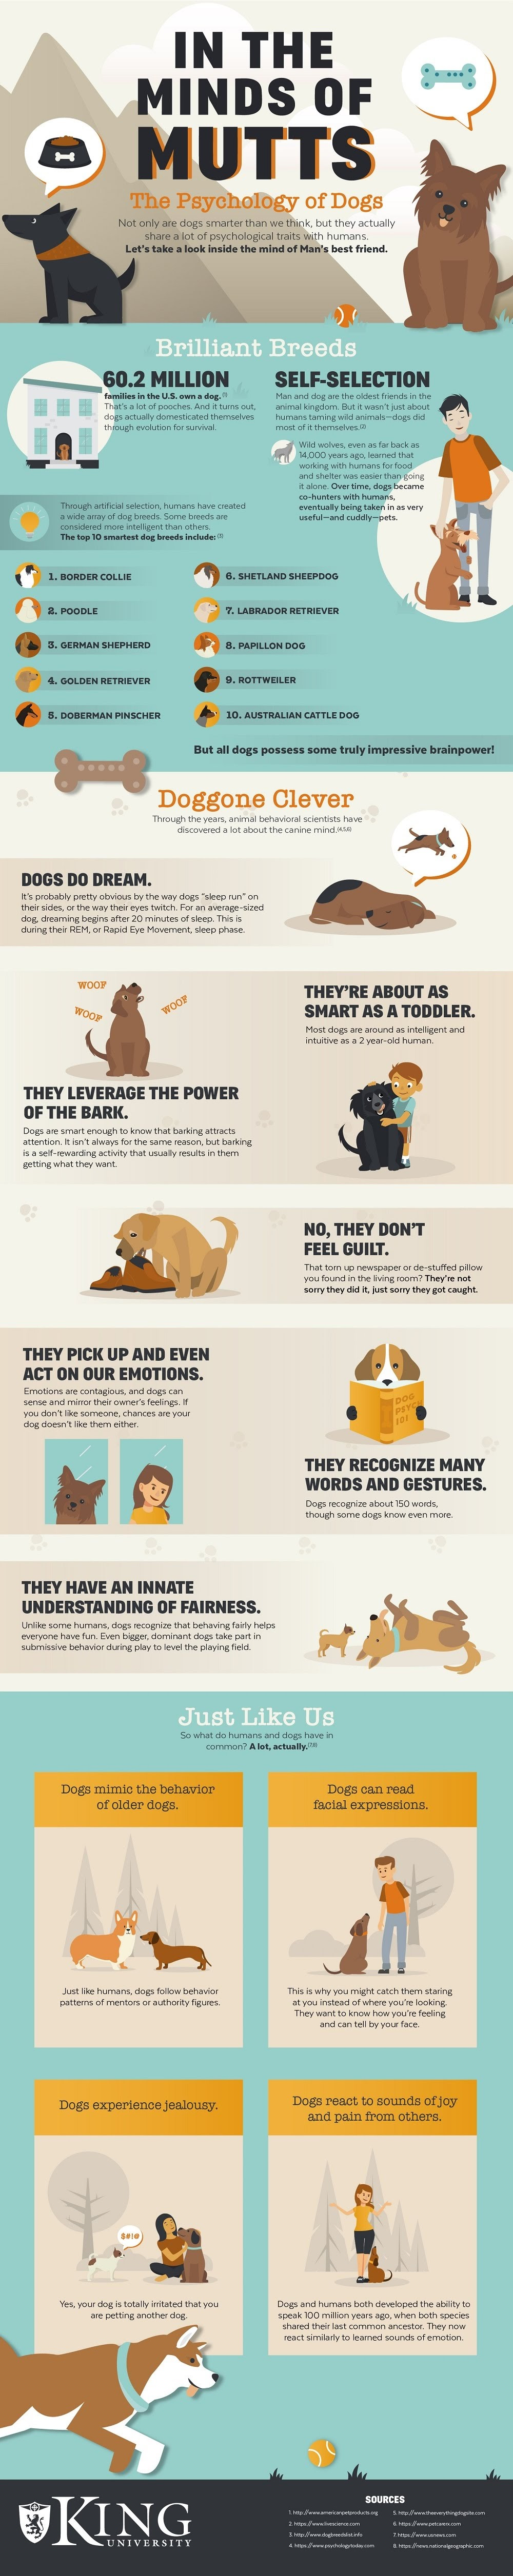 Dog Psychology: In the Mind of Mutts